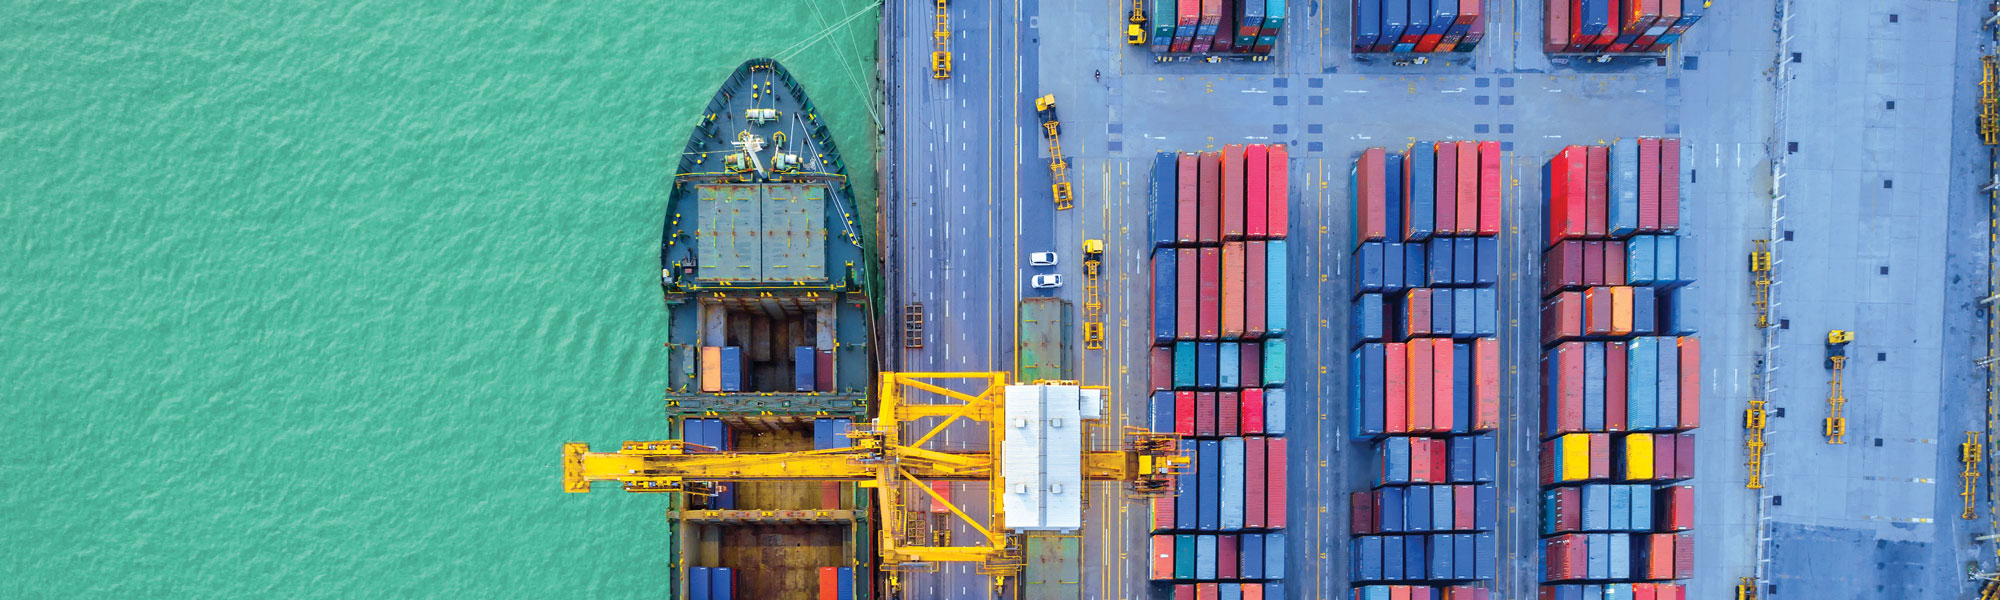 Overhead view of a port, via Shutterstock